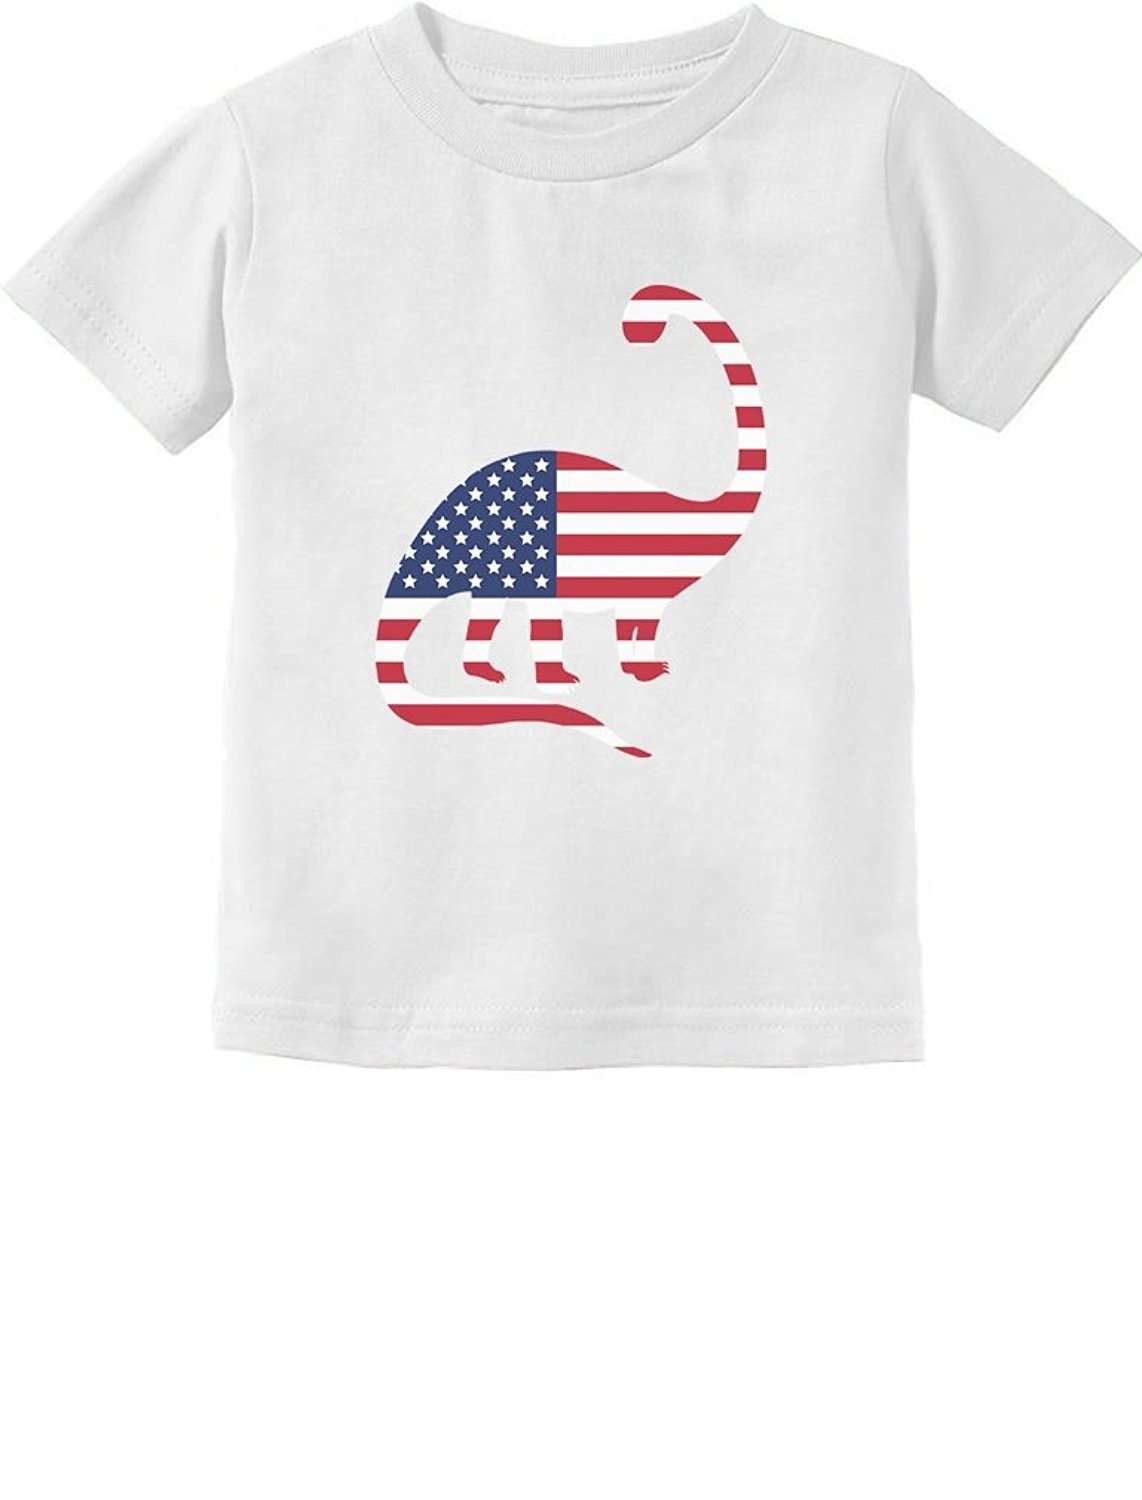 USA Dinosaur American Flag 4th of July Gift Toddler Infant T Shirt O Neck Short Sleeves Boy Cotton Men New Fashion Men 39 S in T Shirts from Men 39 s Clothing